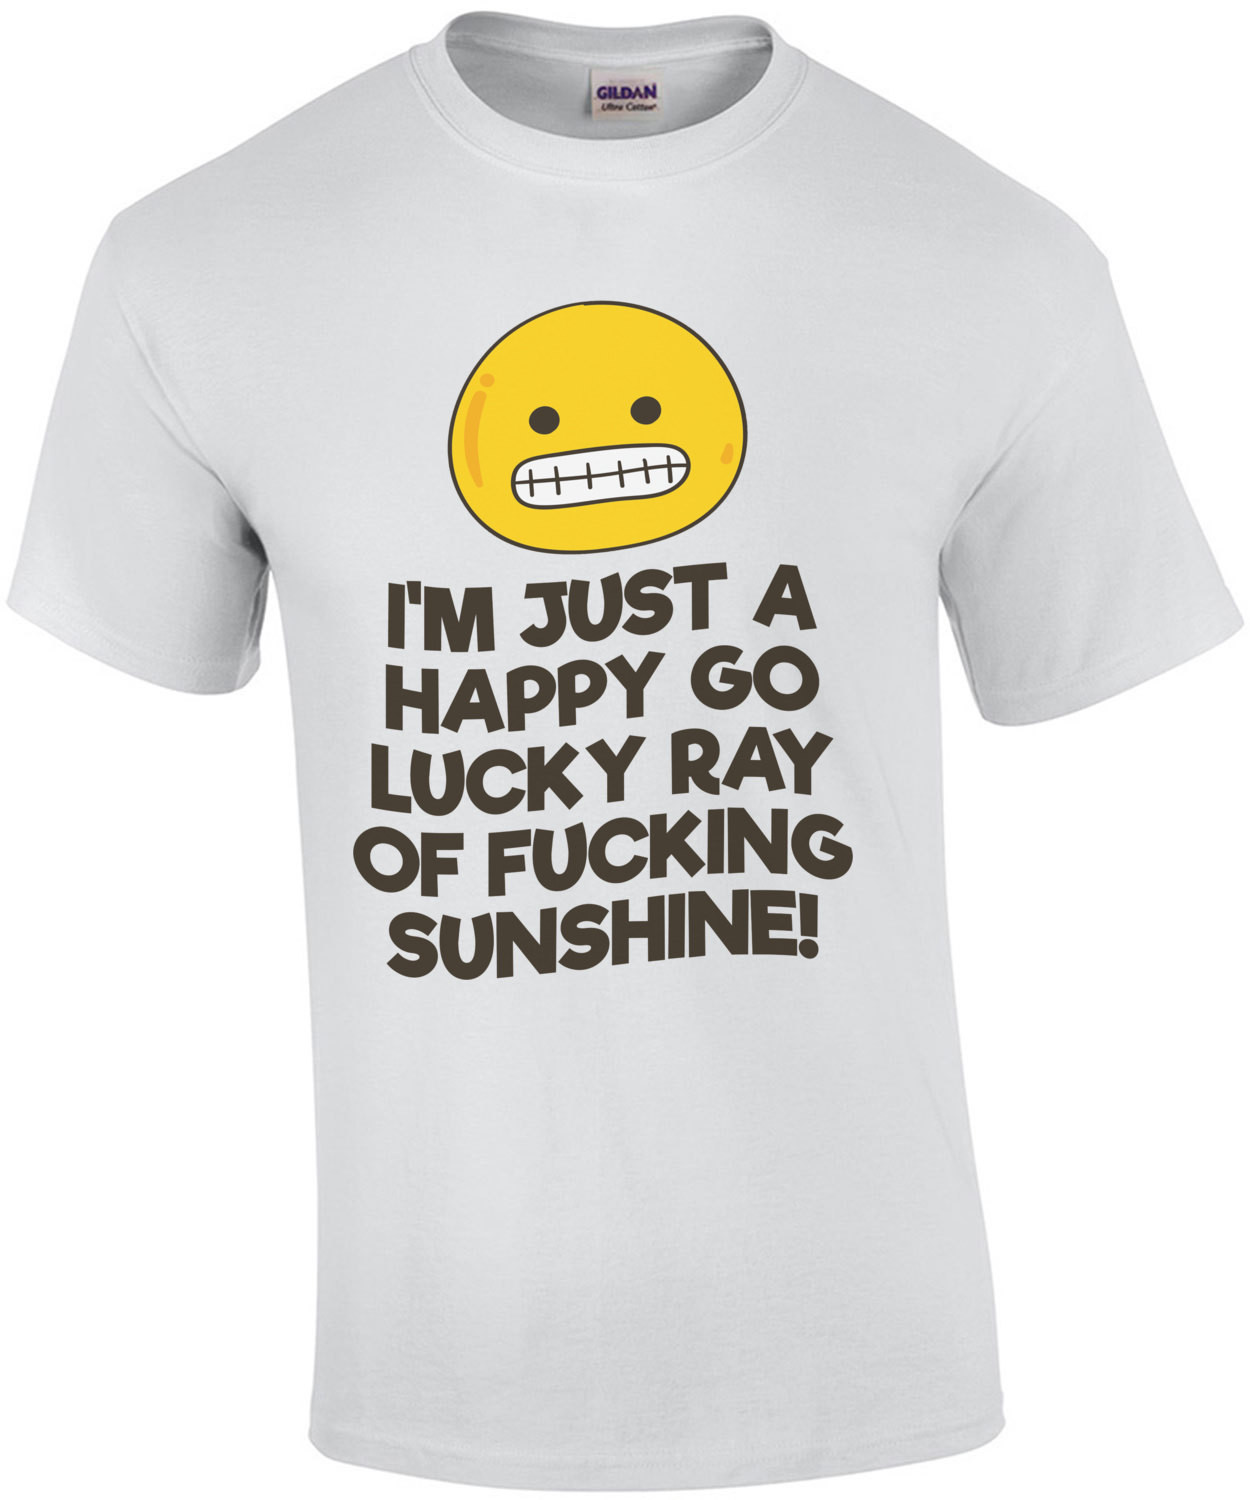 I'm Just A Happy Go Lucky Ray Of Fucking Sunshine T-Shirt